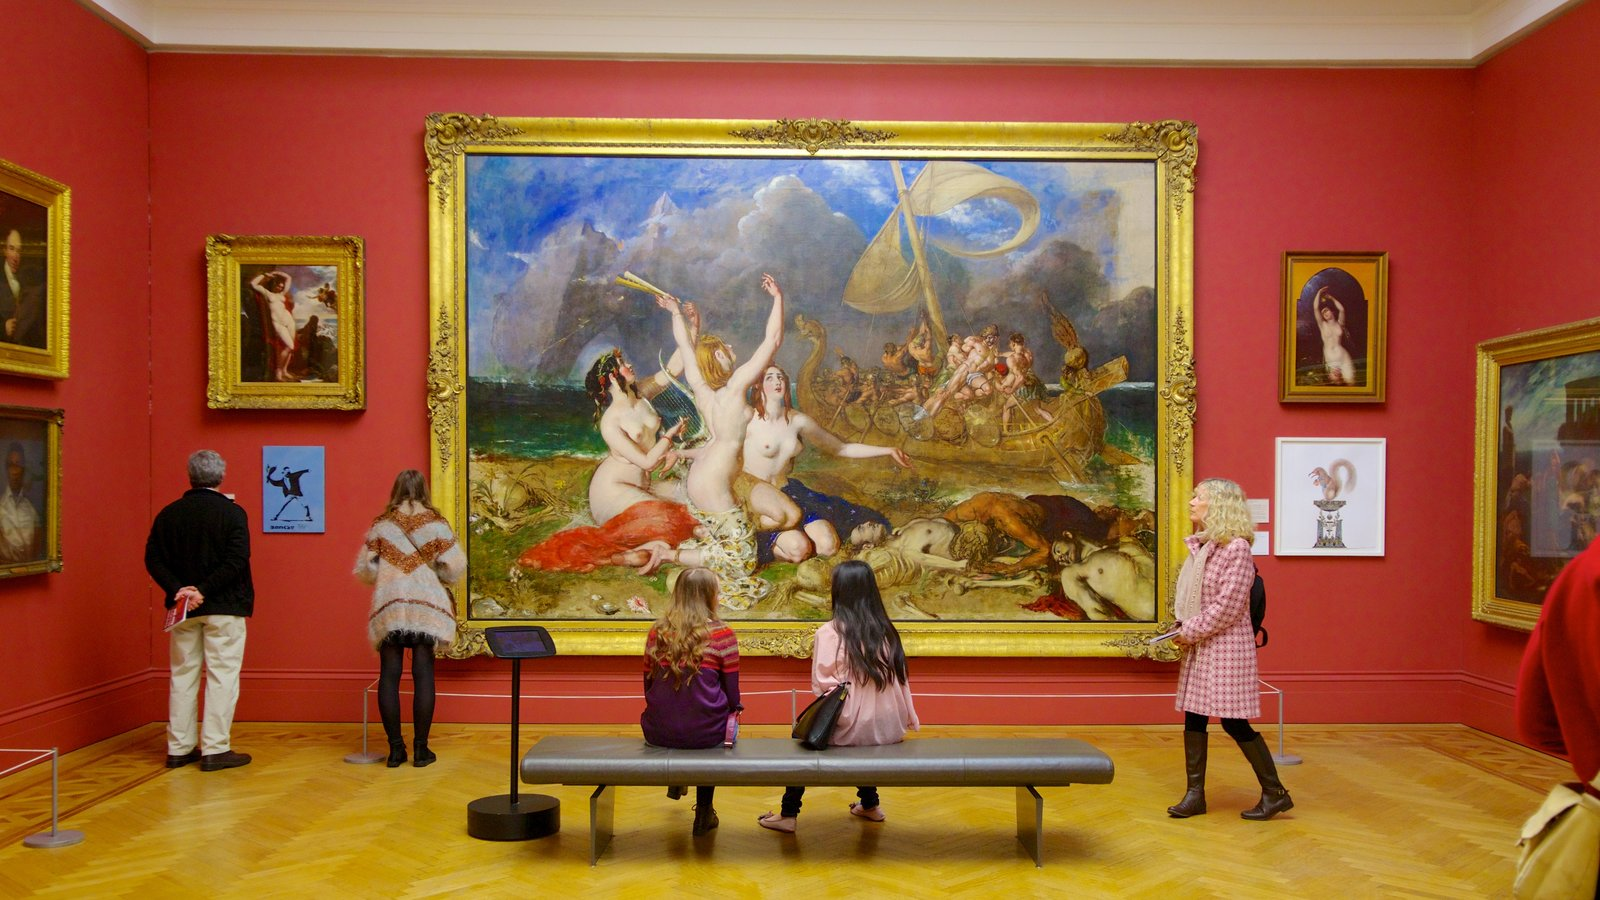 Manchester Art Gallery showing art and interior views as well as a small group of people